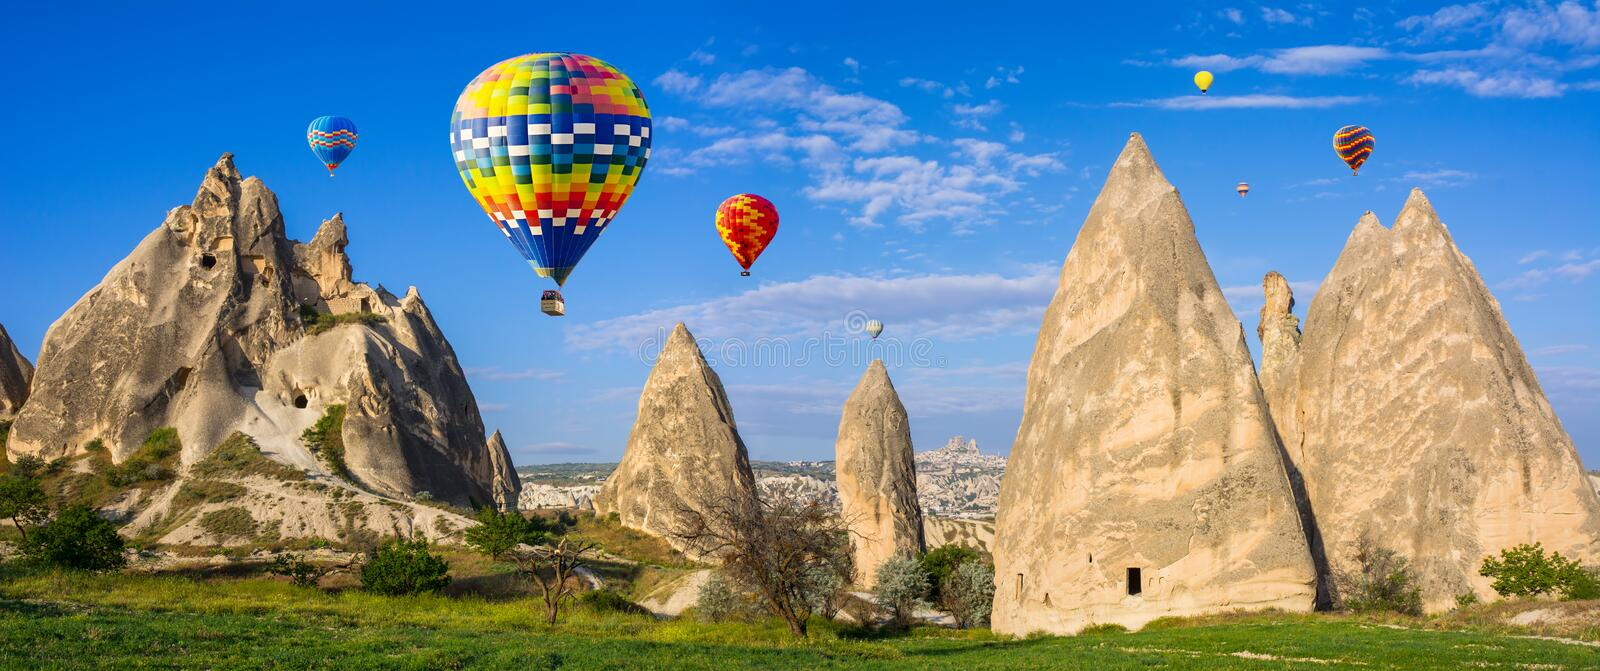 The great tourist attraction of Cappadocia - balloon flight. Cap. Padocia is known around the world as one of the best places to fly with hot air balloons stock photography